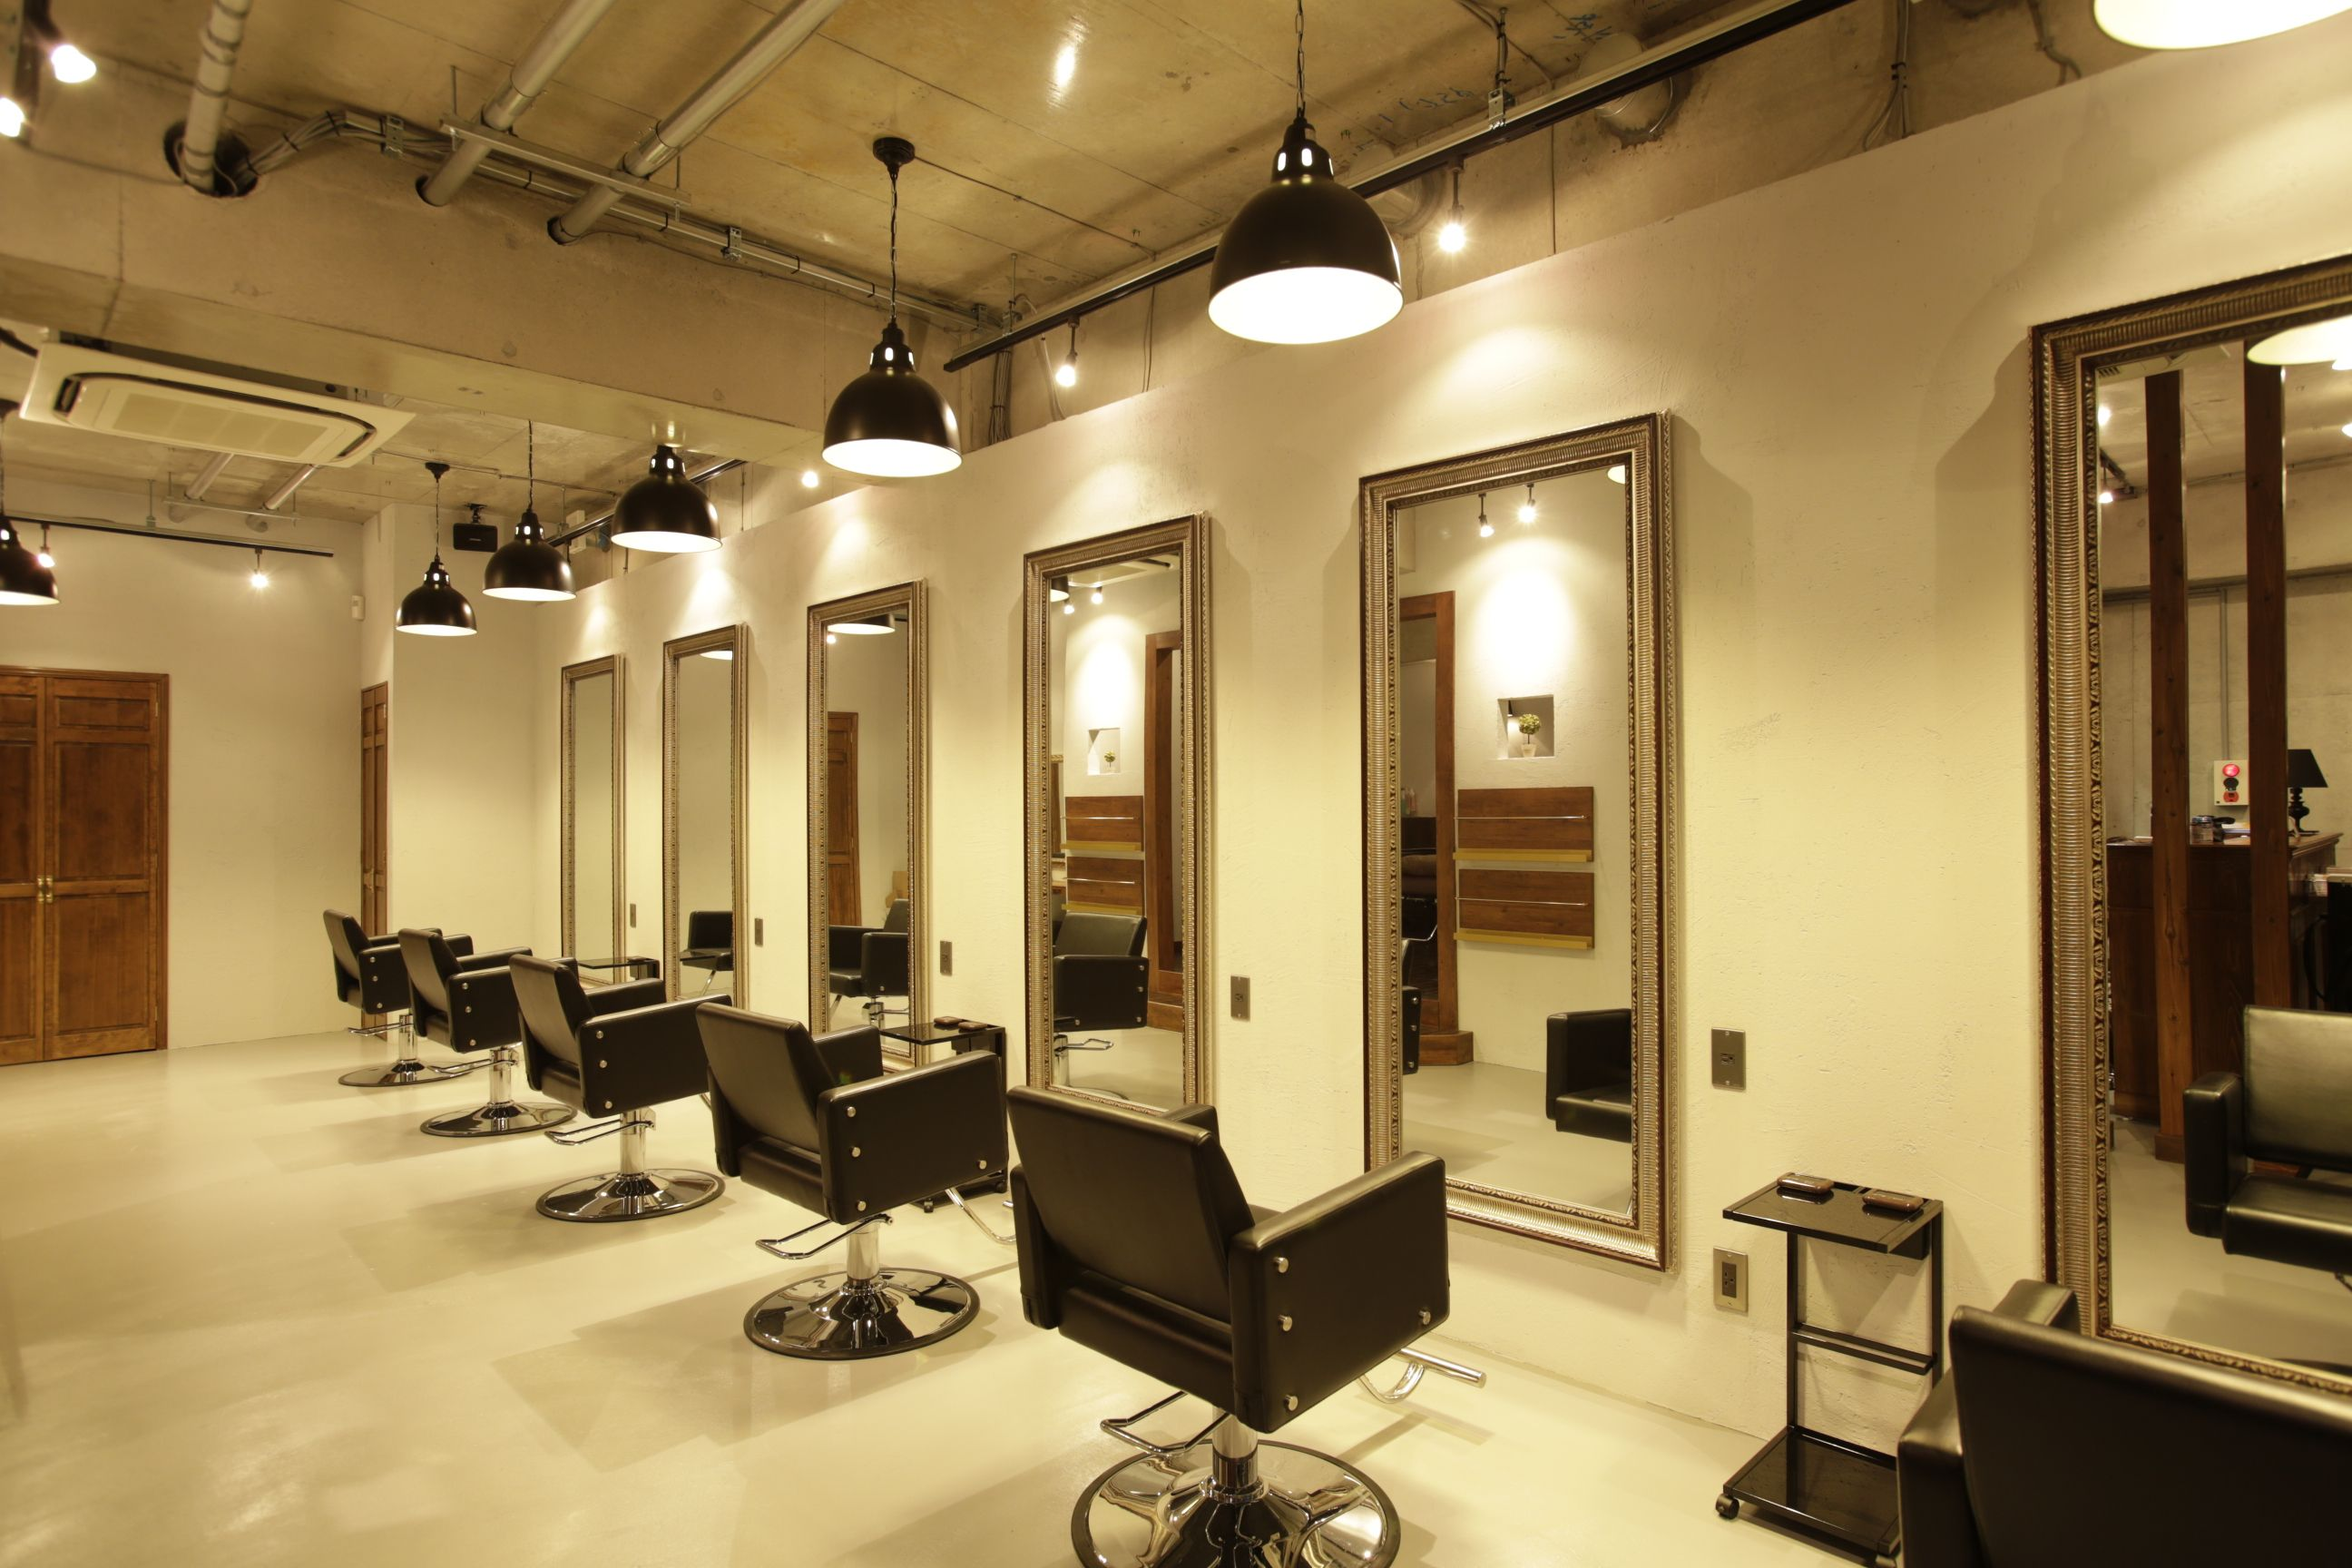 Beauty salon interior design ideas hair space for Beauty salon designs for interior